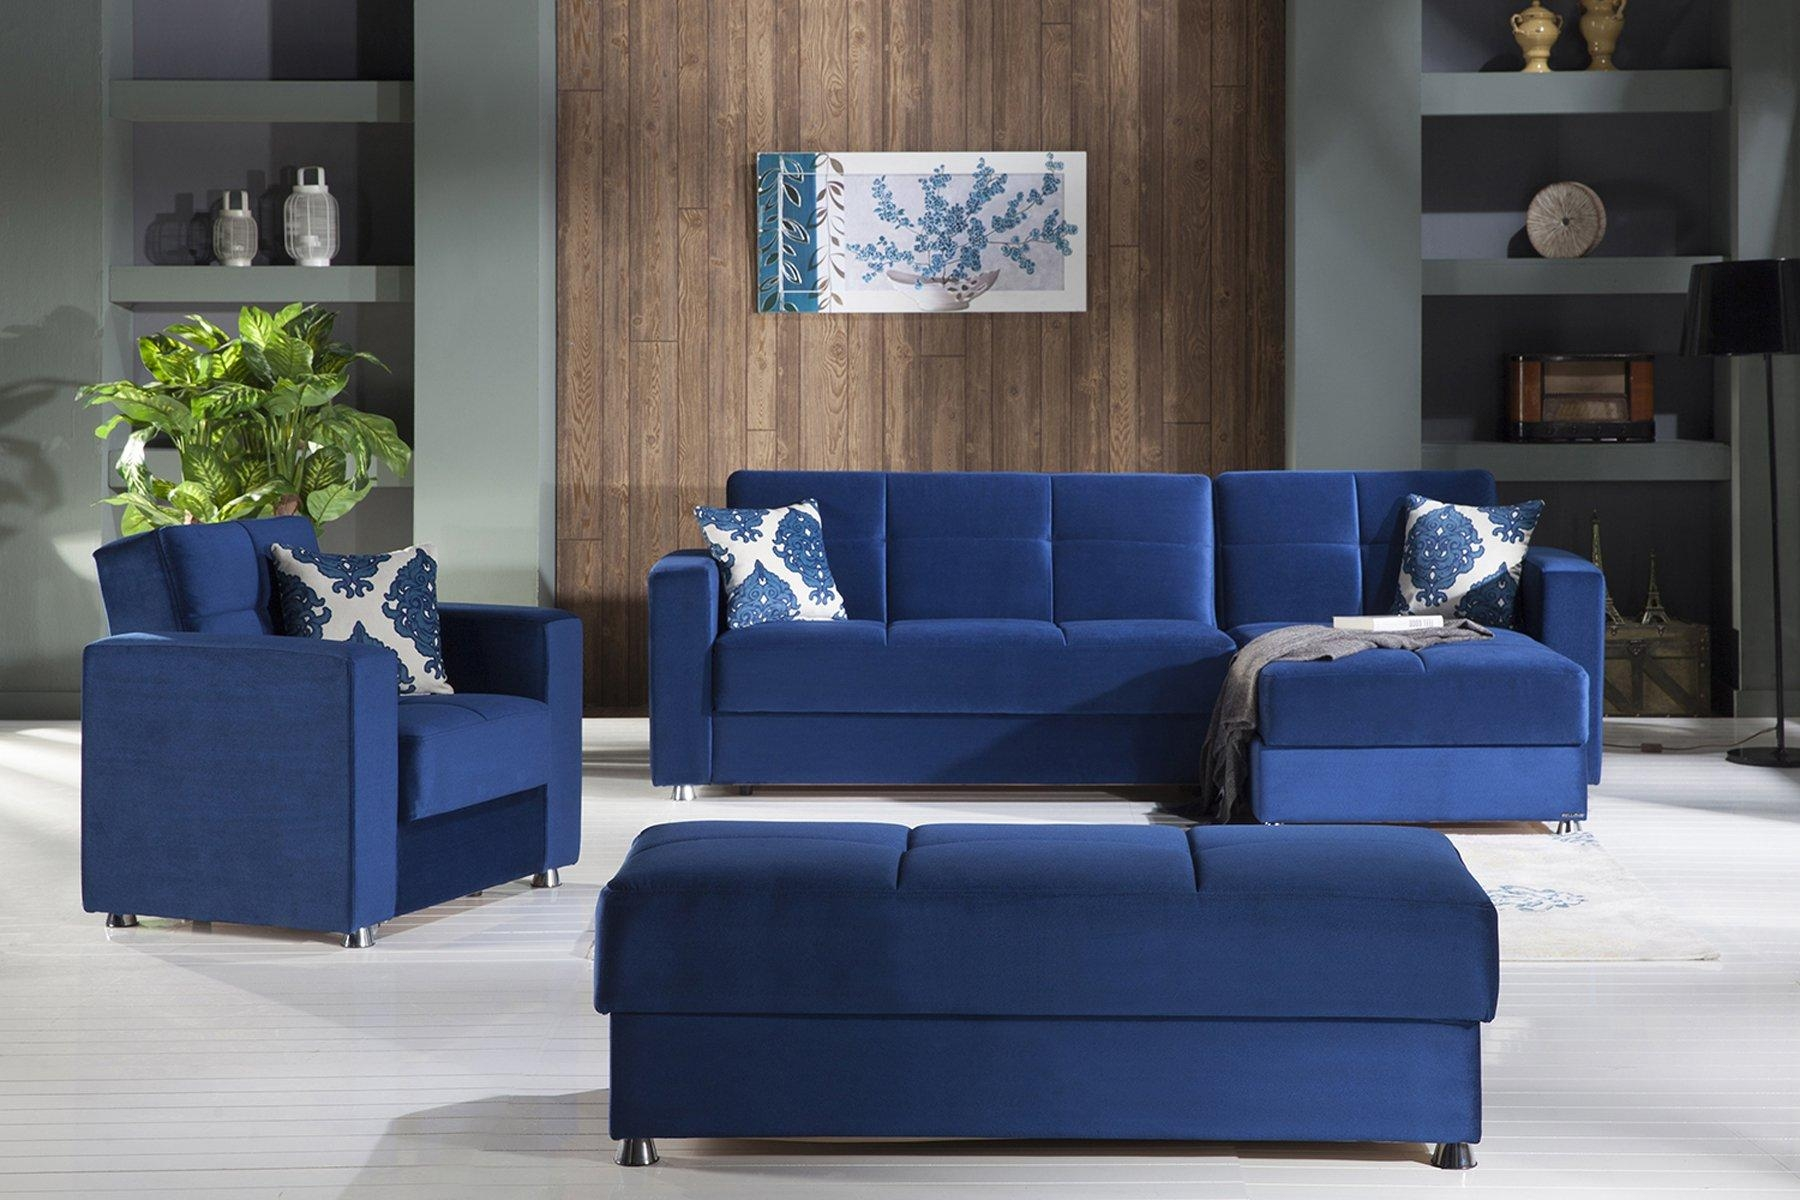 Elegant Roma Navy Sectional Sofasunset Pertaining To Elegant Sectional Sofa (Image 5 of 15)